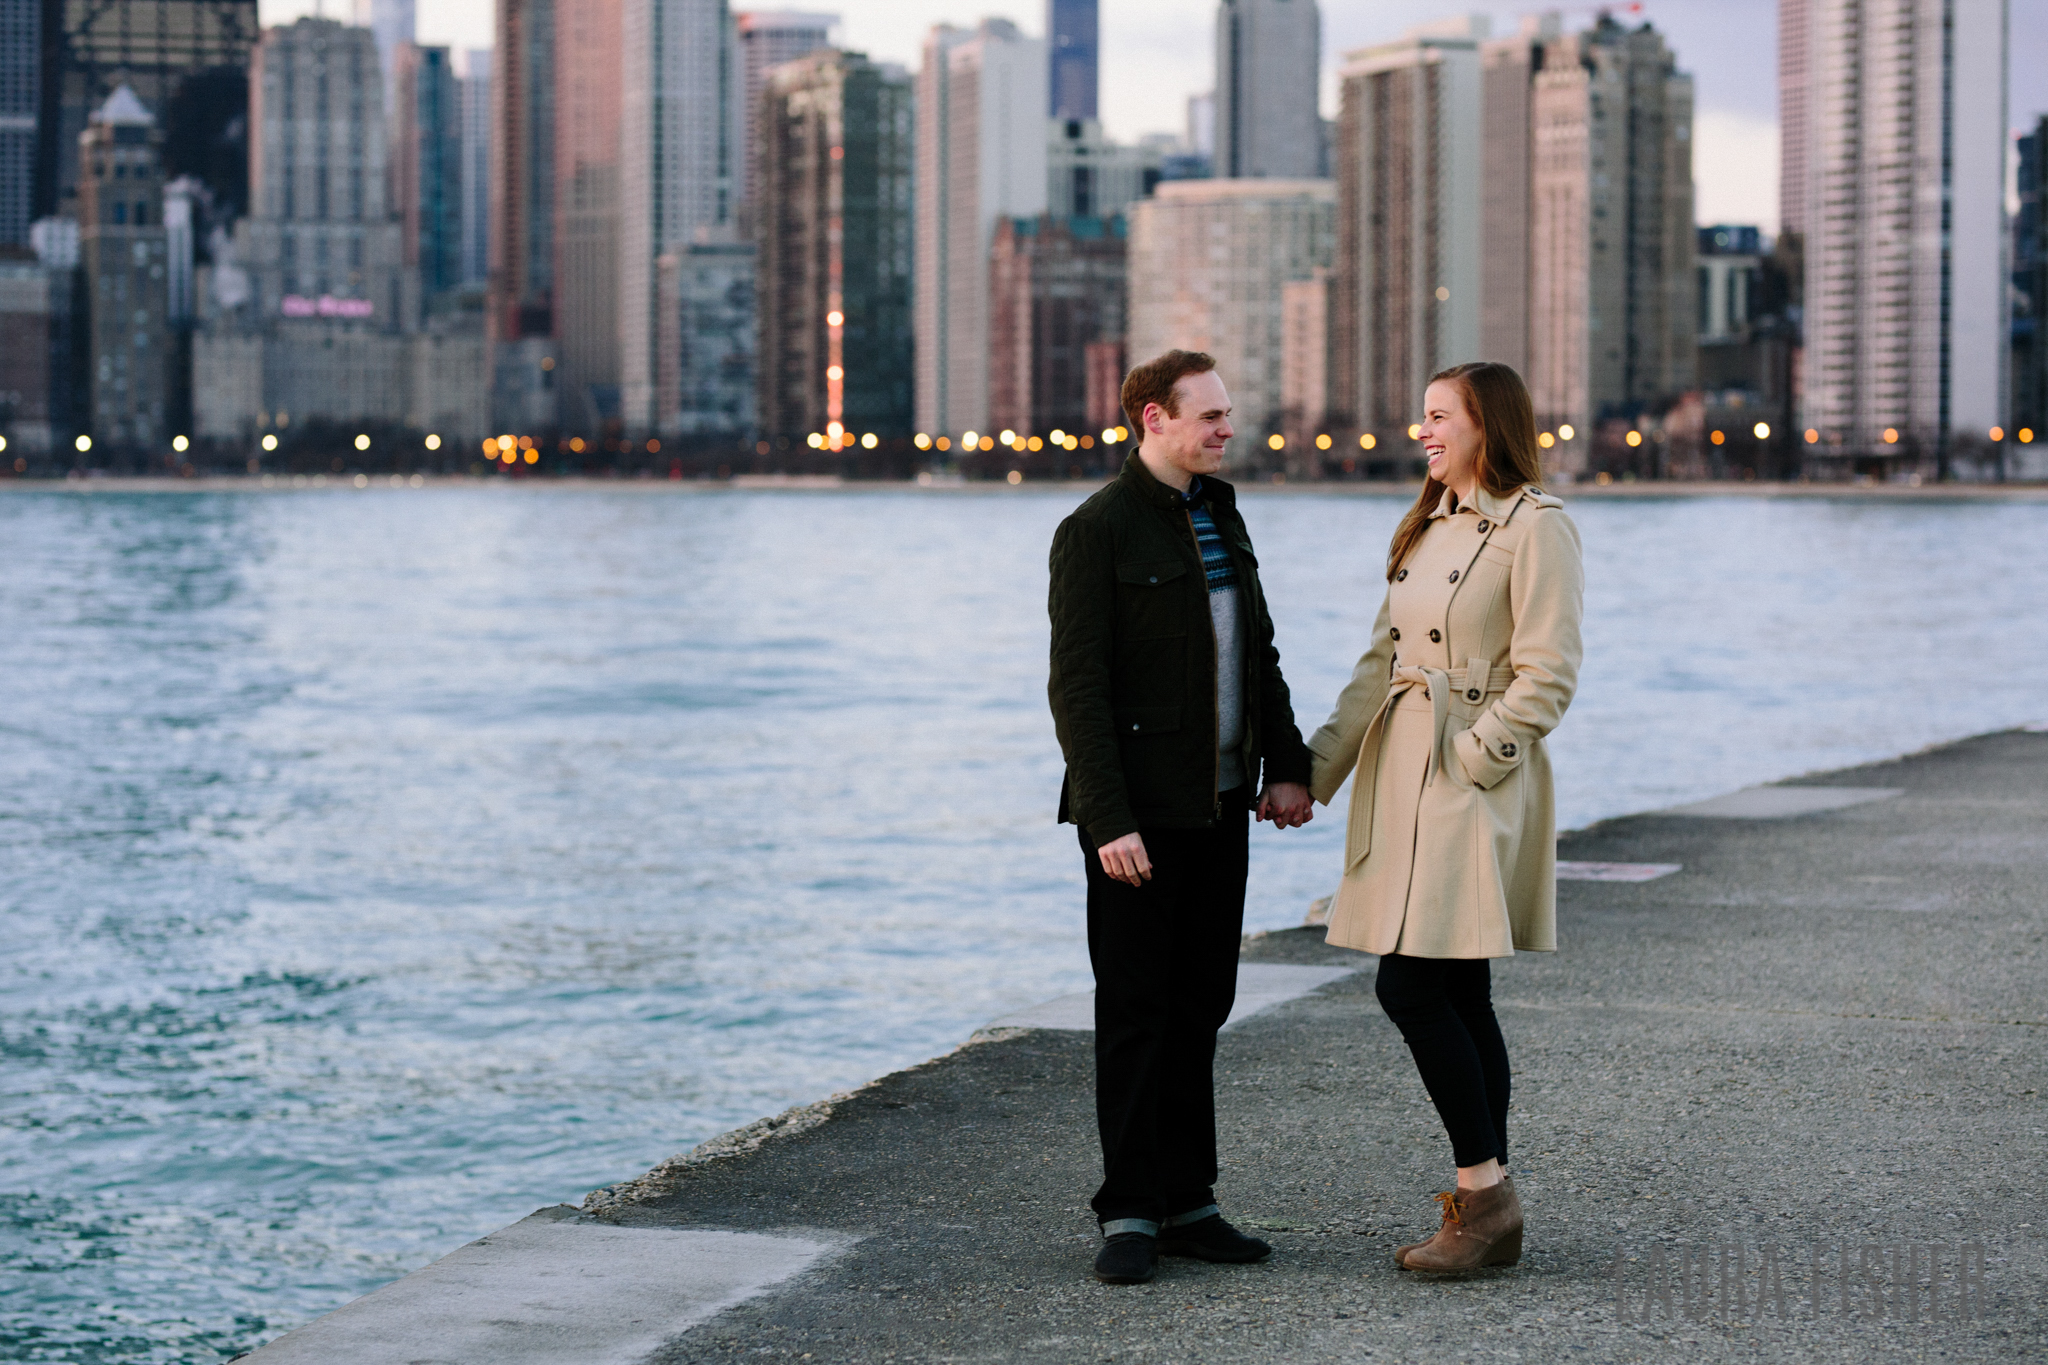 lincoln-park-chicago-engagement-0006-2.jpg